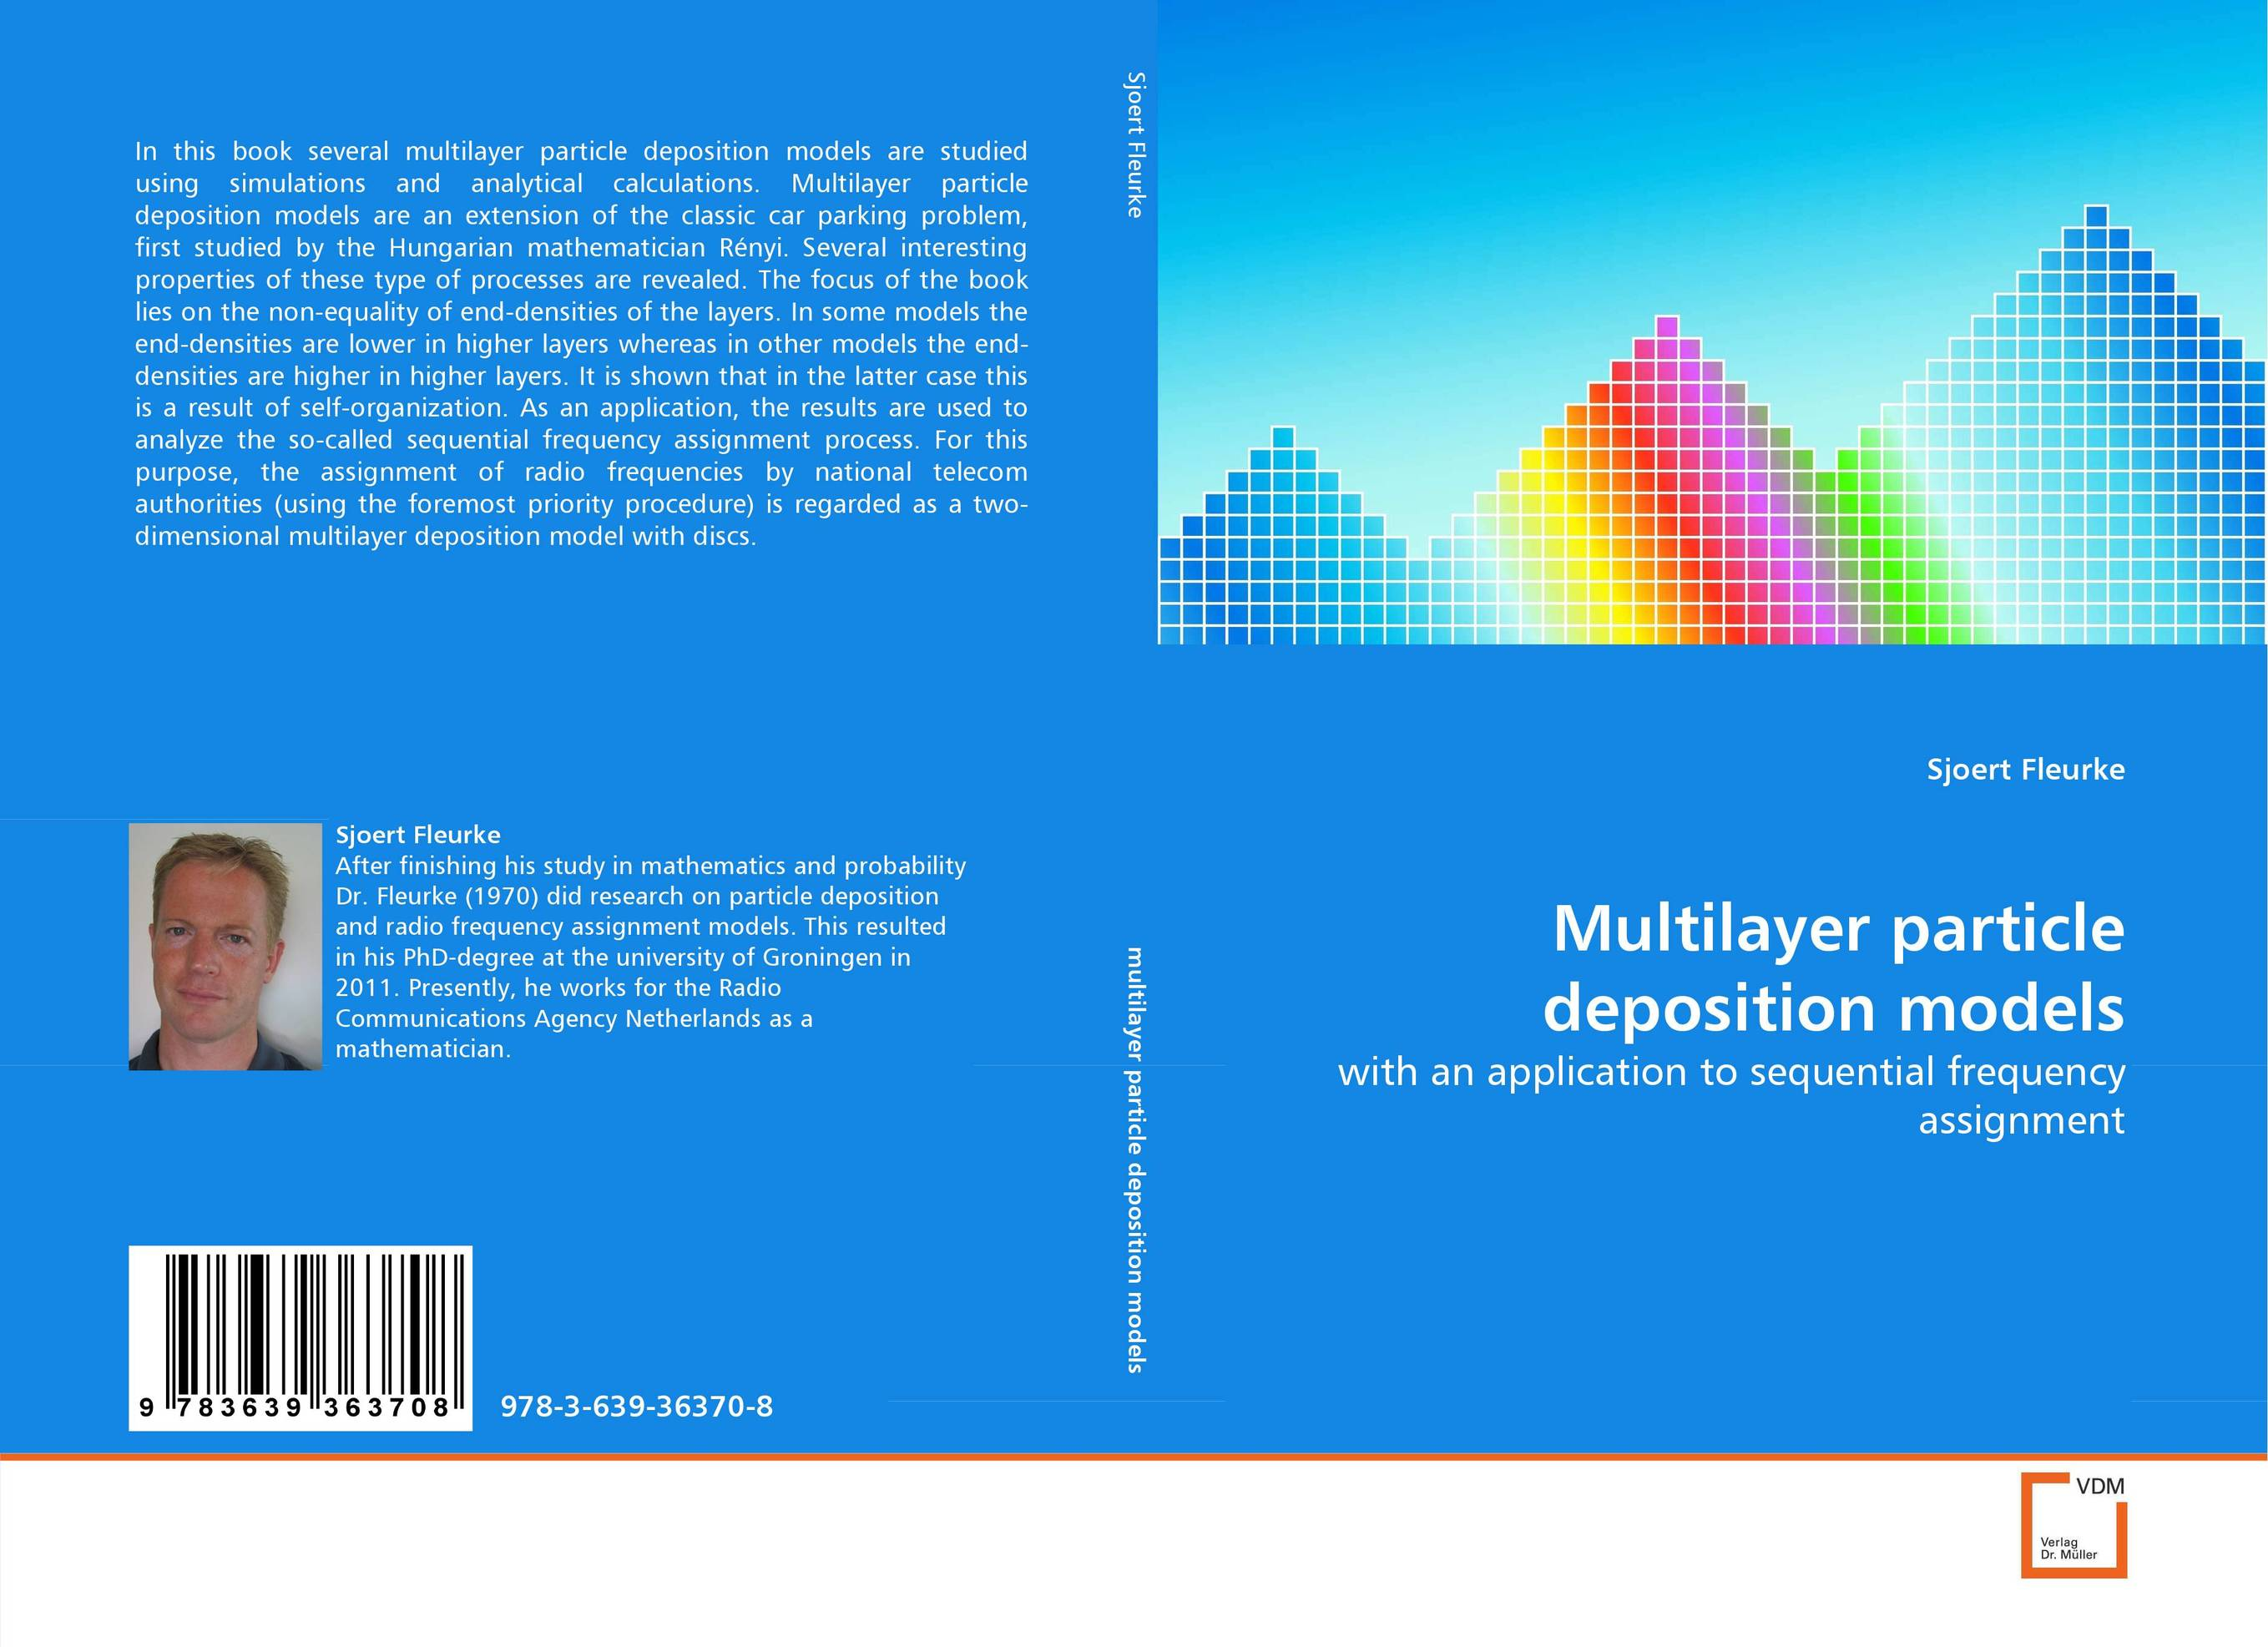 Multilayer particle deposition models